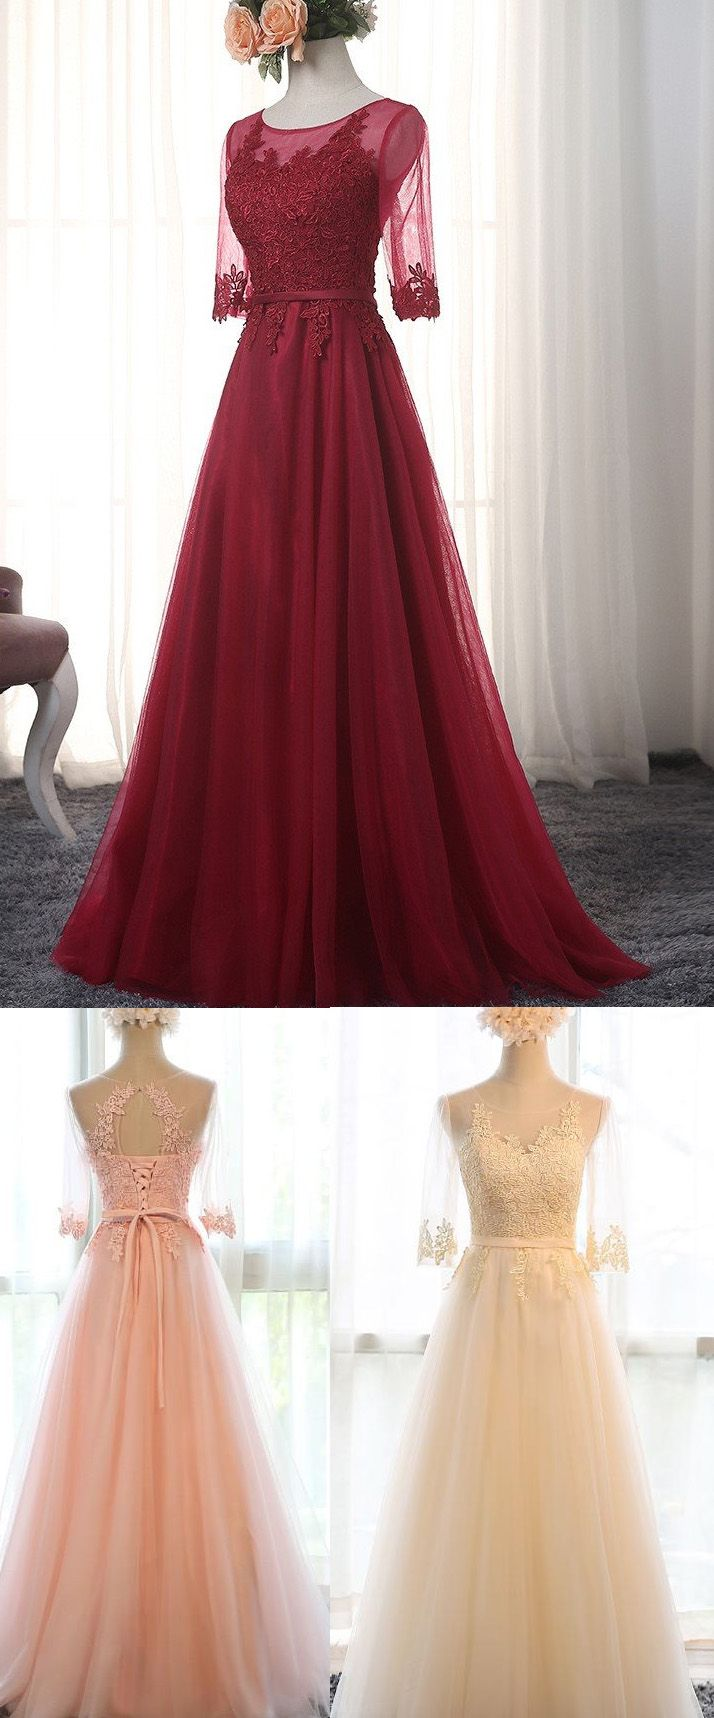 Customized sleeves dresses long burgundy evening prom dresses with